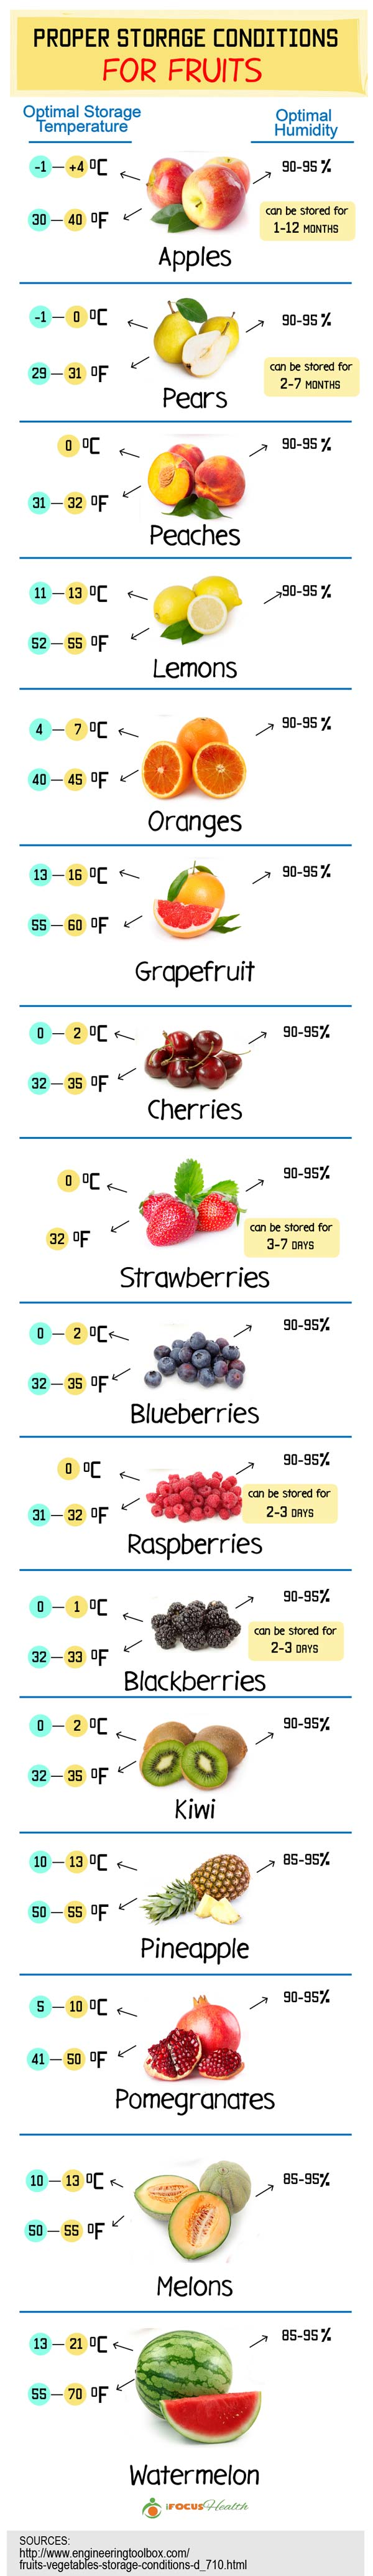 recommended storage conditions for fruits infographic